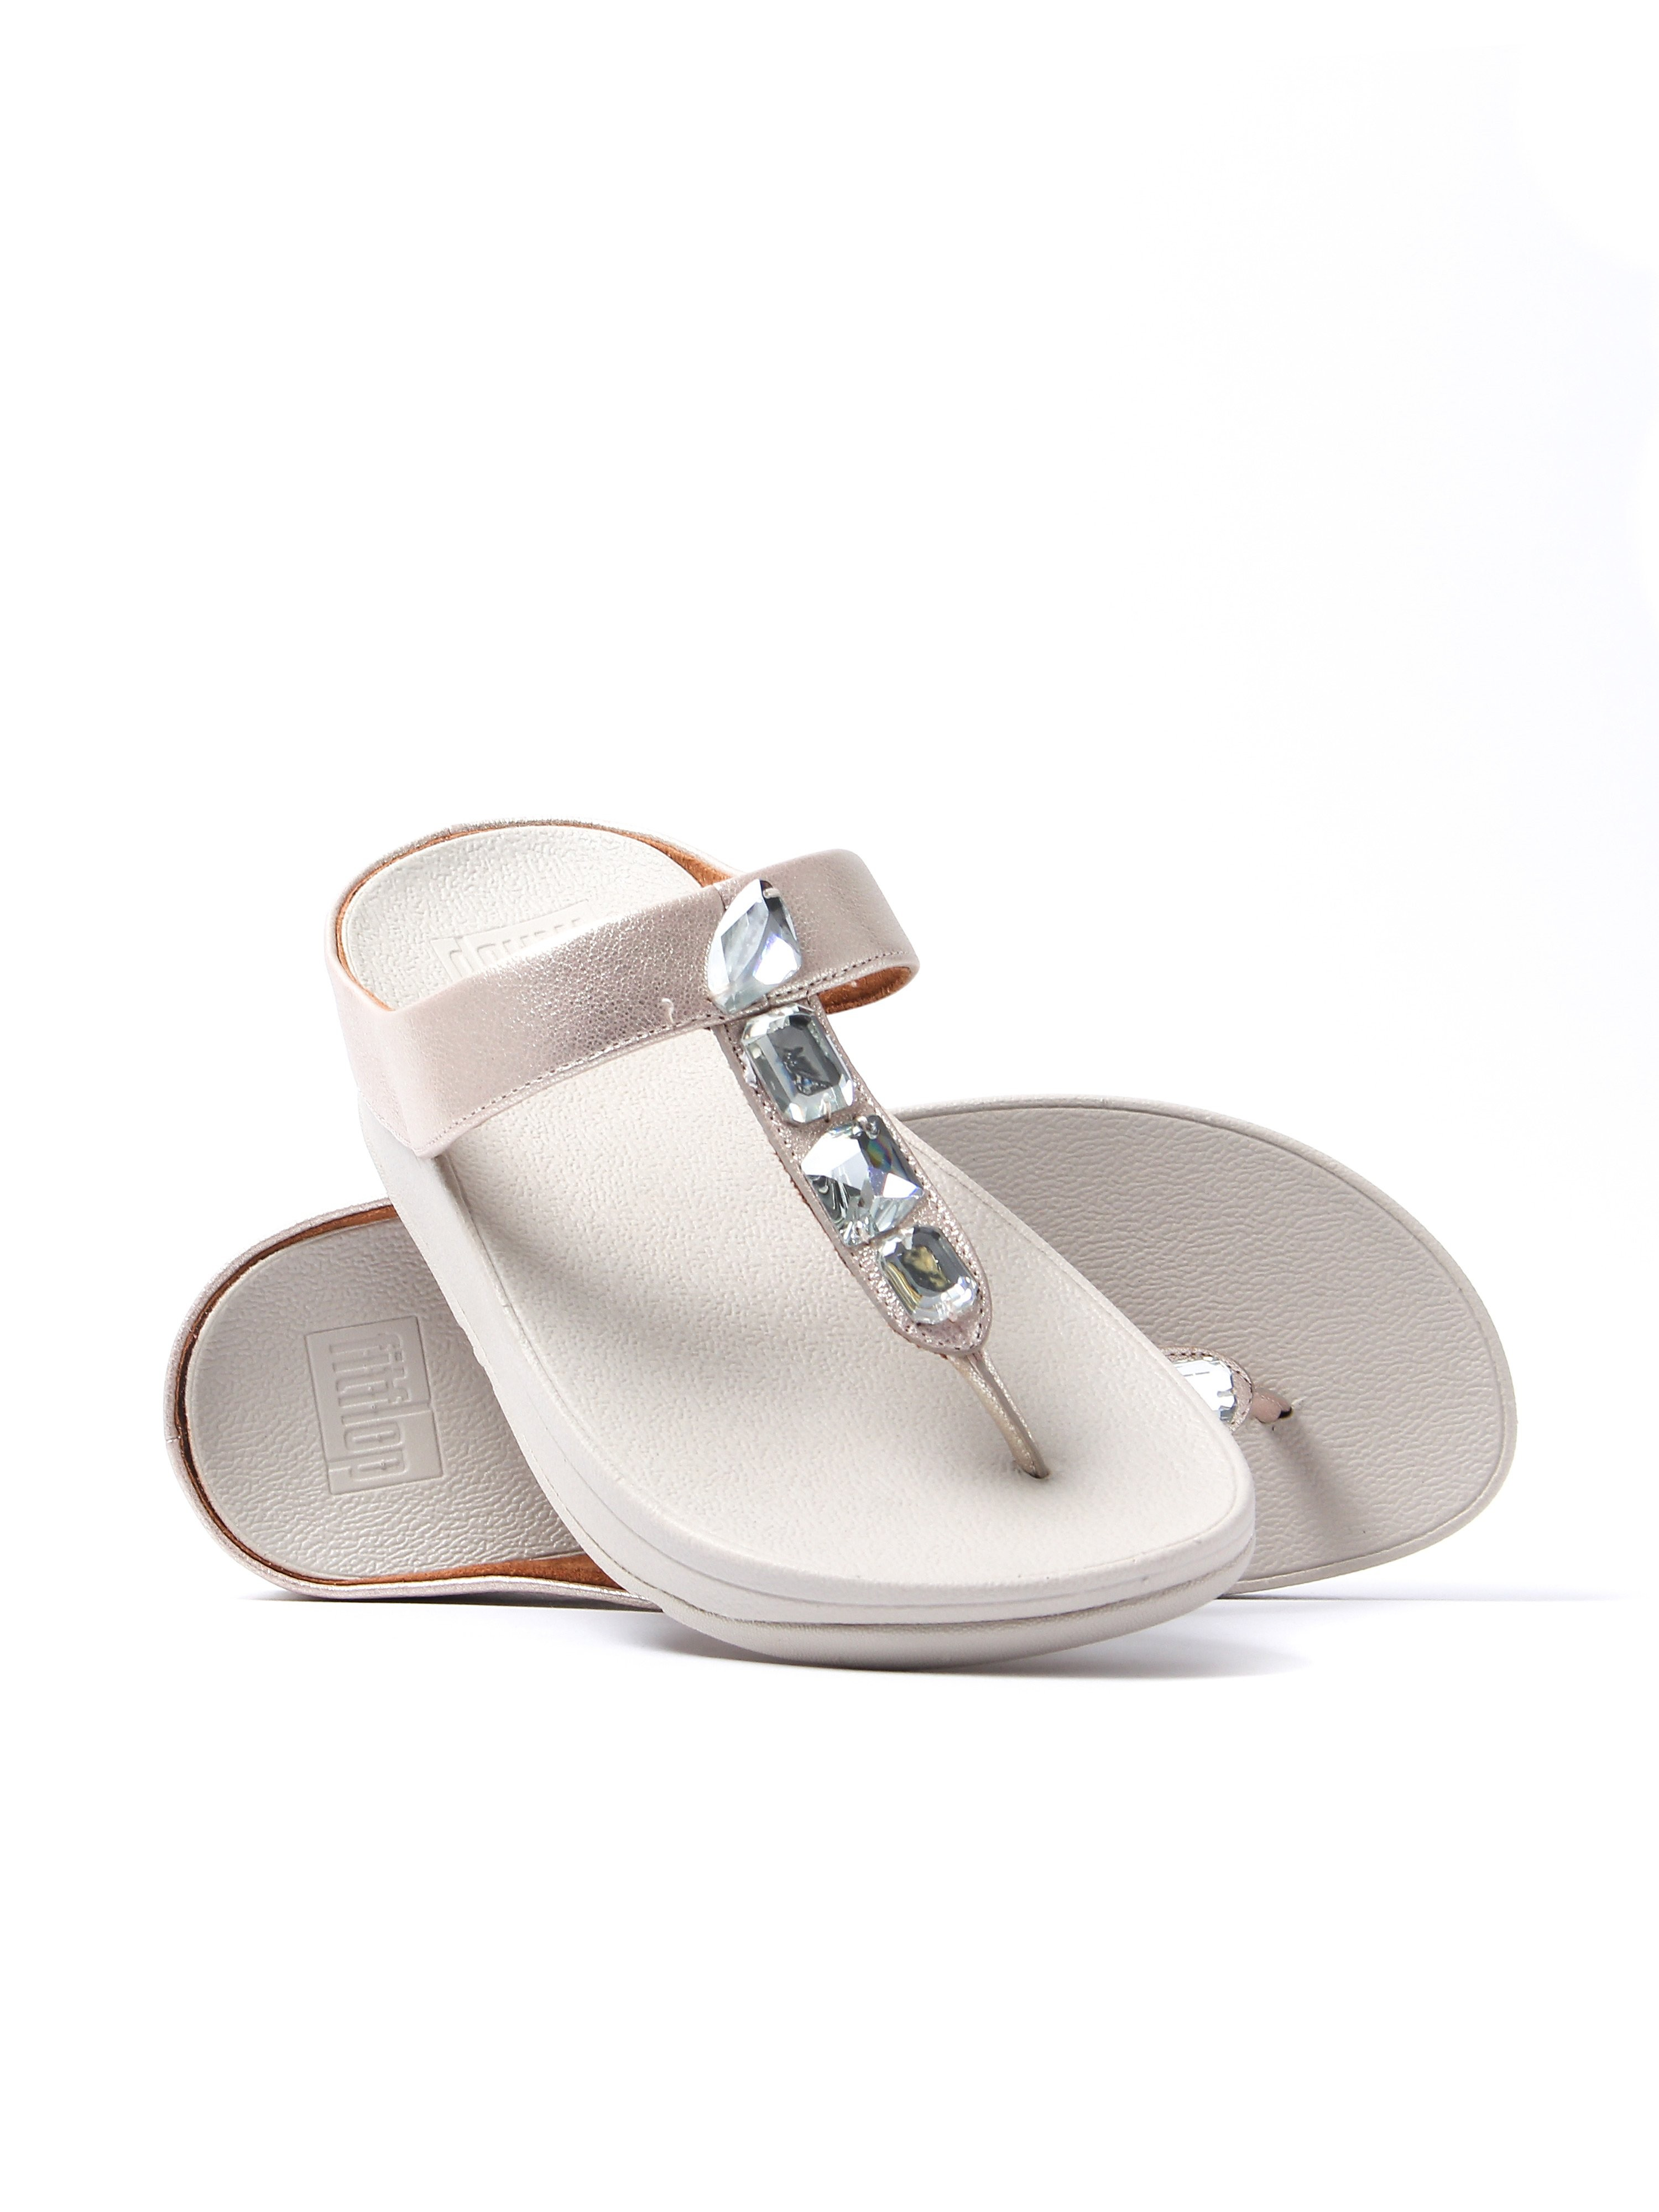 FitFlop Women's Roka Toe Thong Sandals - Silver Leather